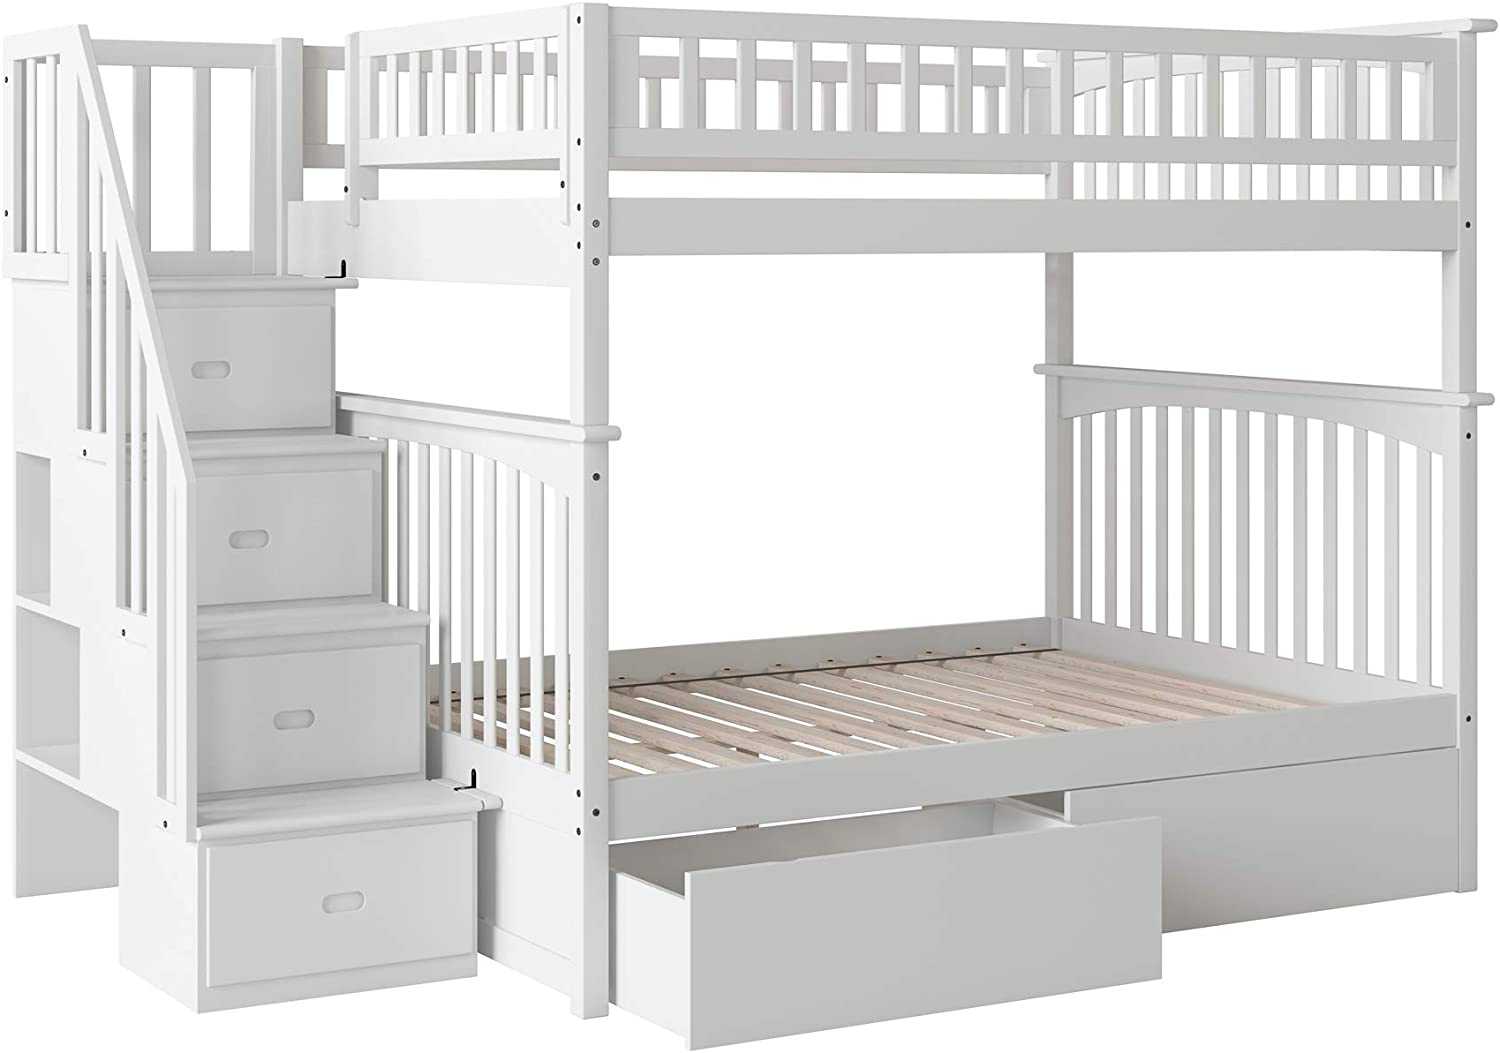 Atlantic Furniture Columbia - Litera para Escalera con cajones de Cama: Amazon.es: Juguetes y juegos